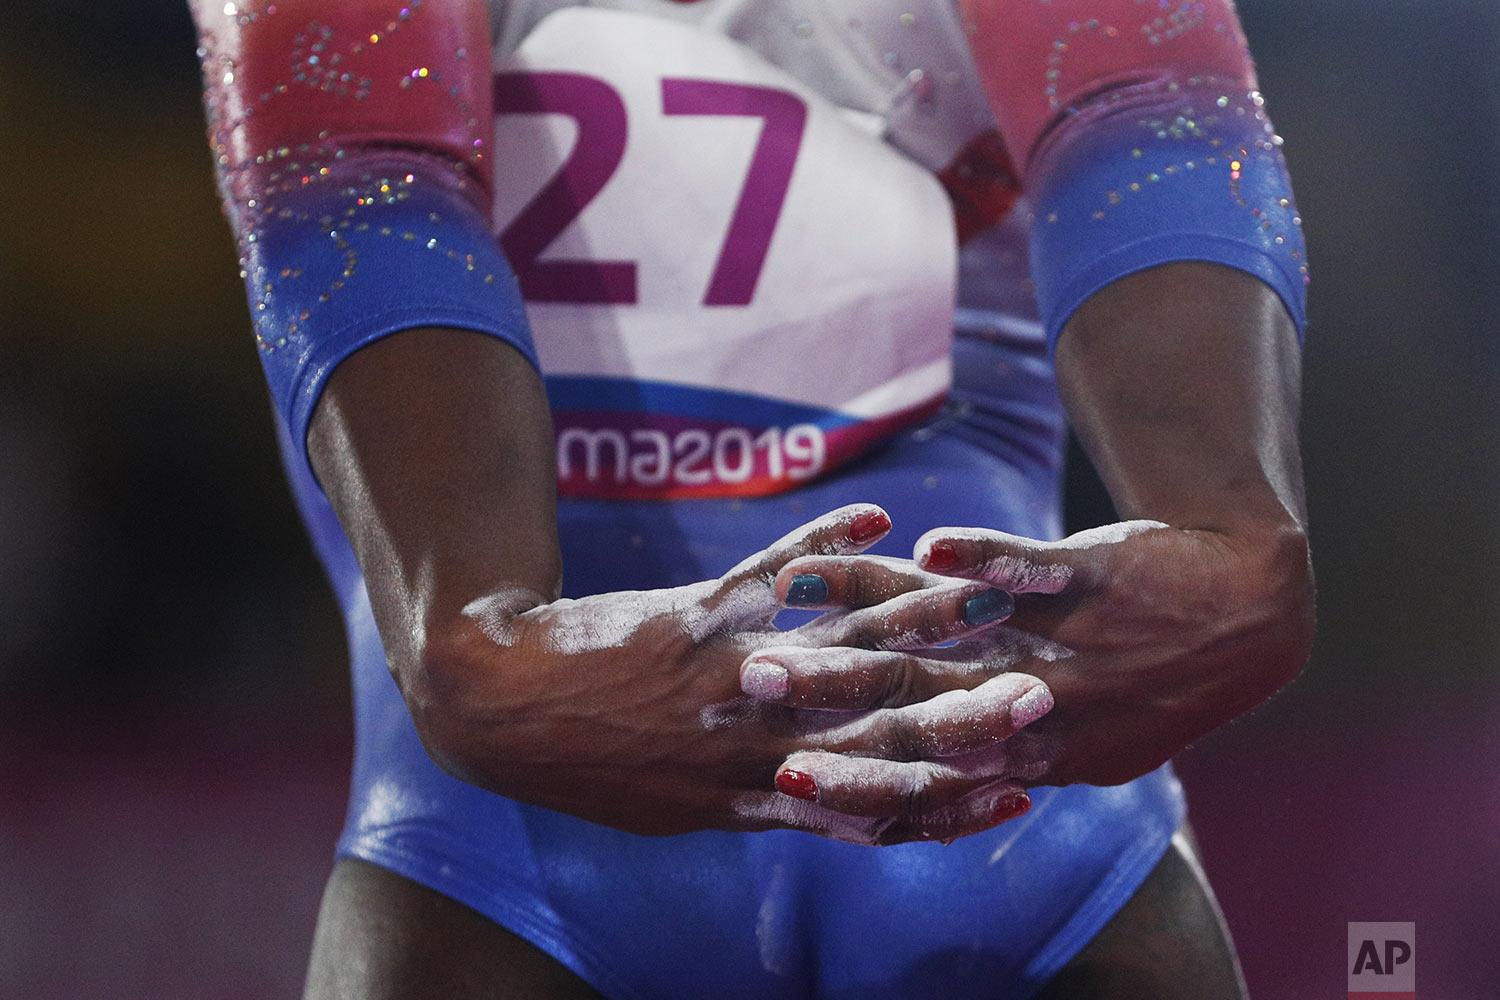 Yesenia Saskia Ferrera, of Cuba, stretches her arms behind her back as she prepares to compete on beam in the women's gymnastics qualification and team final at the Pan American Games in Lima, Peru, Saturday, July 27, 2019. (AP Photo/Rebecca Blackwell)